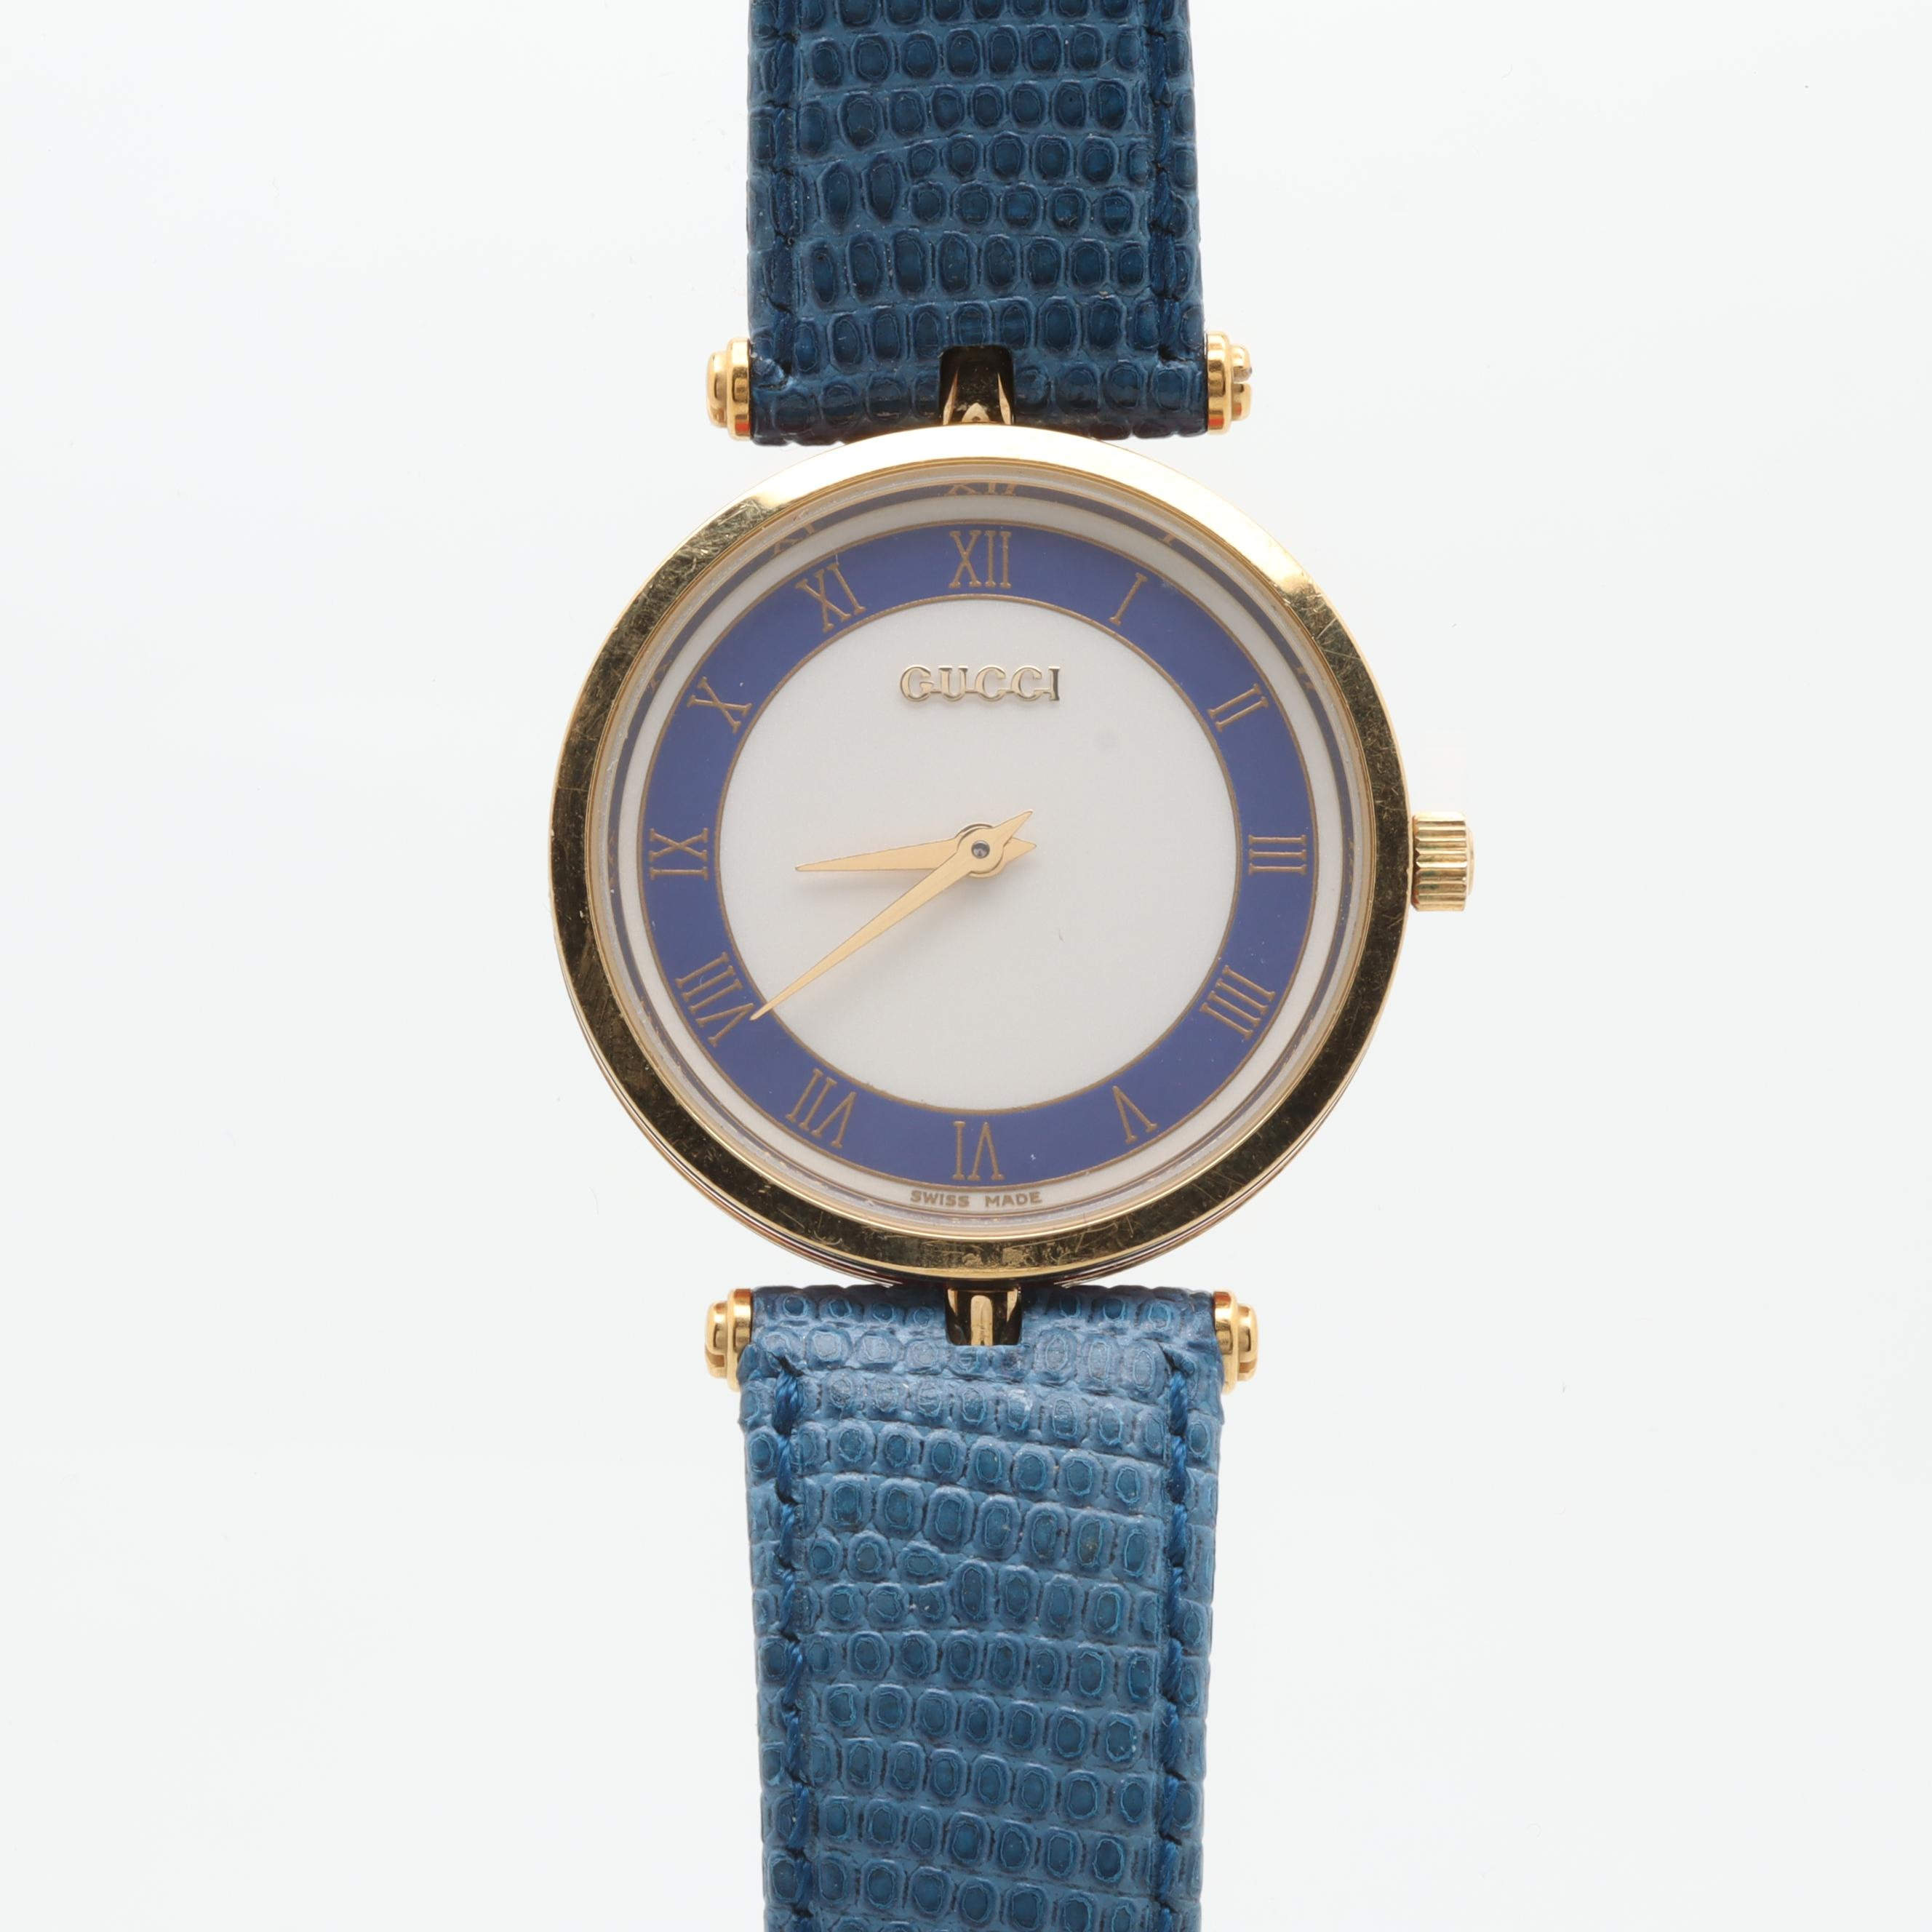 Gucci Gold Tone Wristwatch With Red and Blue Enameling